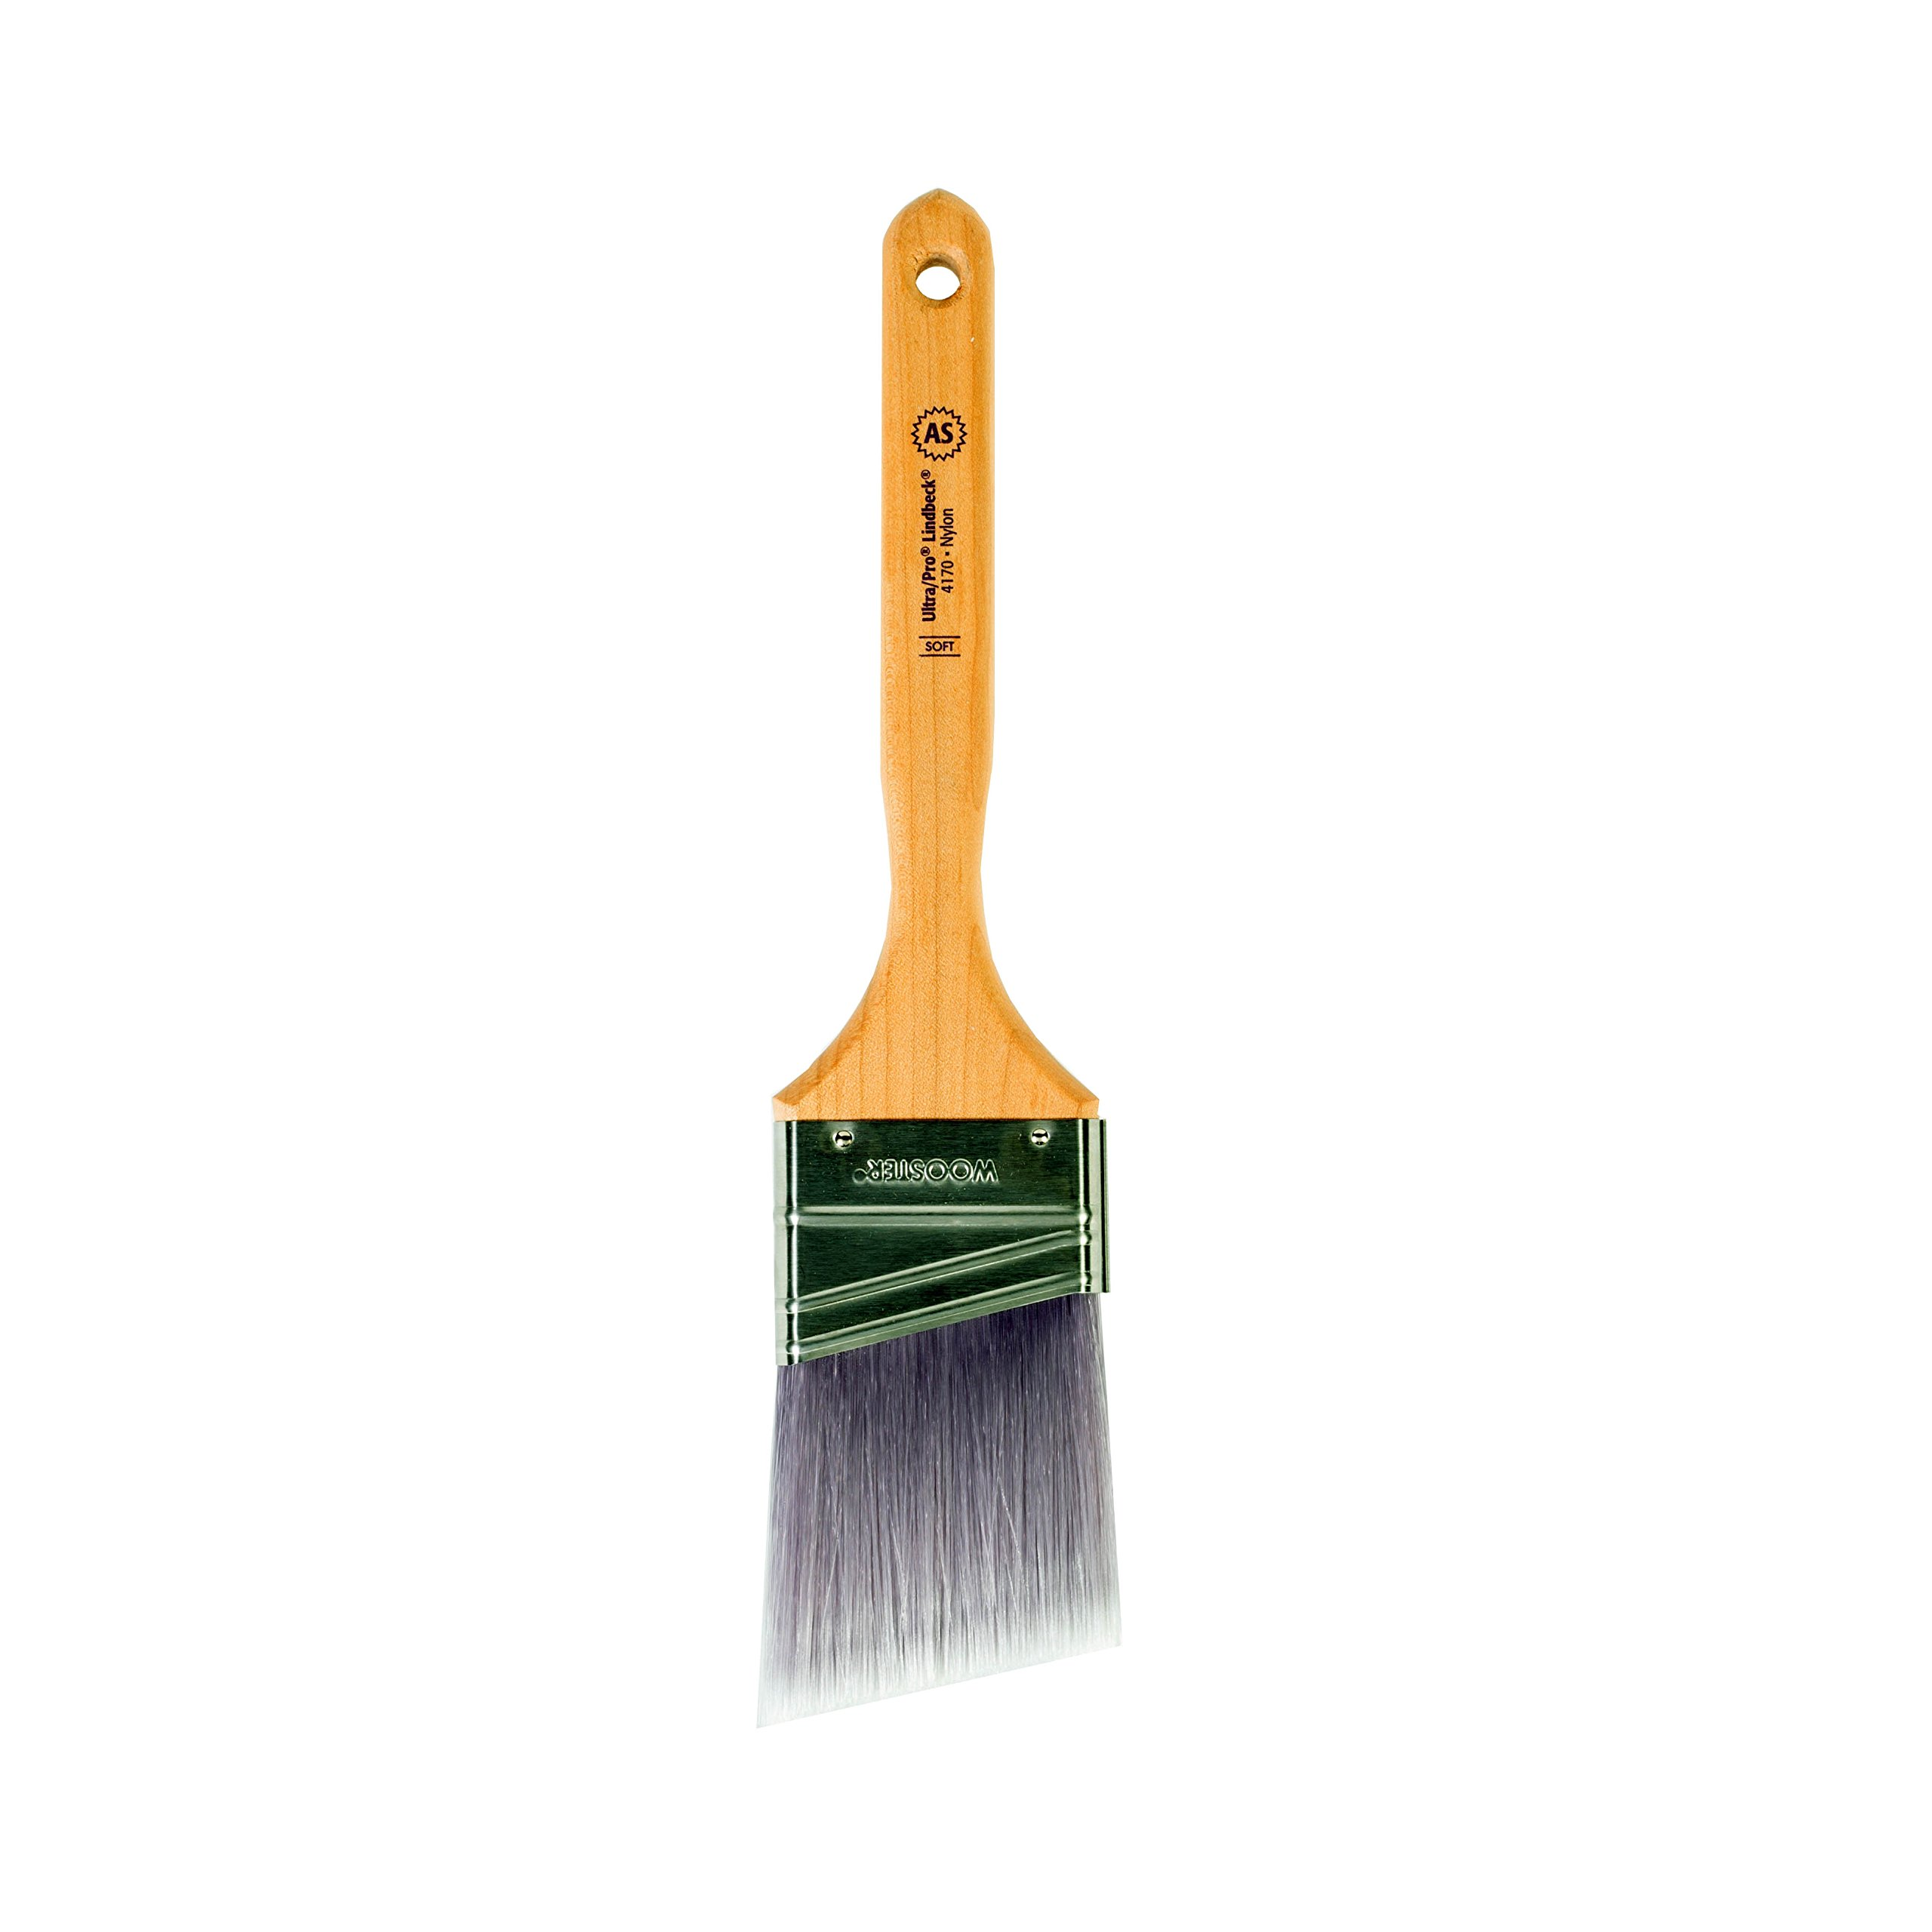 Wooster Brush 4170-2-1/2 Ultra/Pro Soft Lindbeck Angle Sash Paintbrush, 2-1/2-Inch